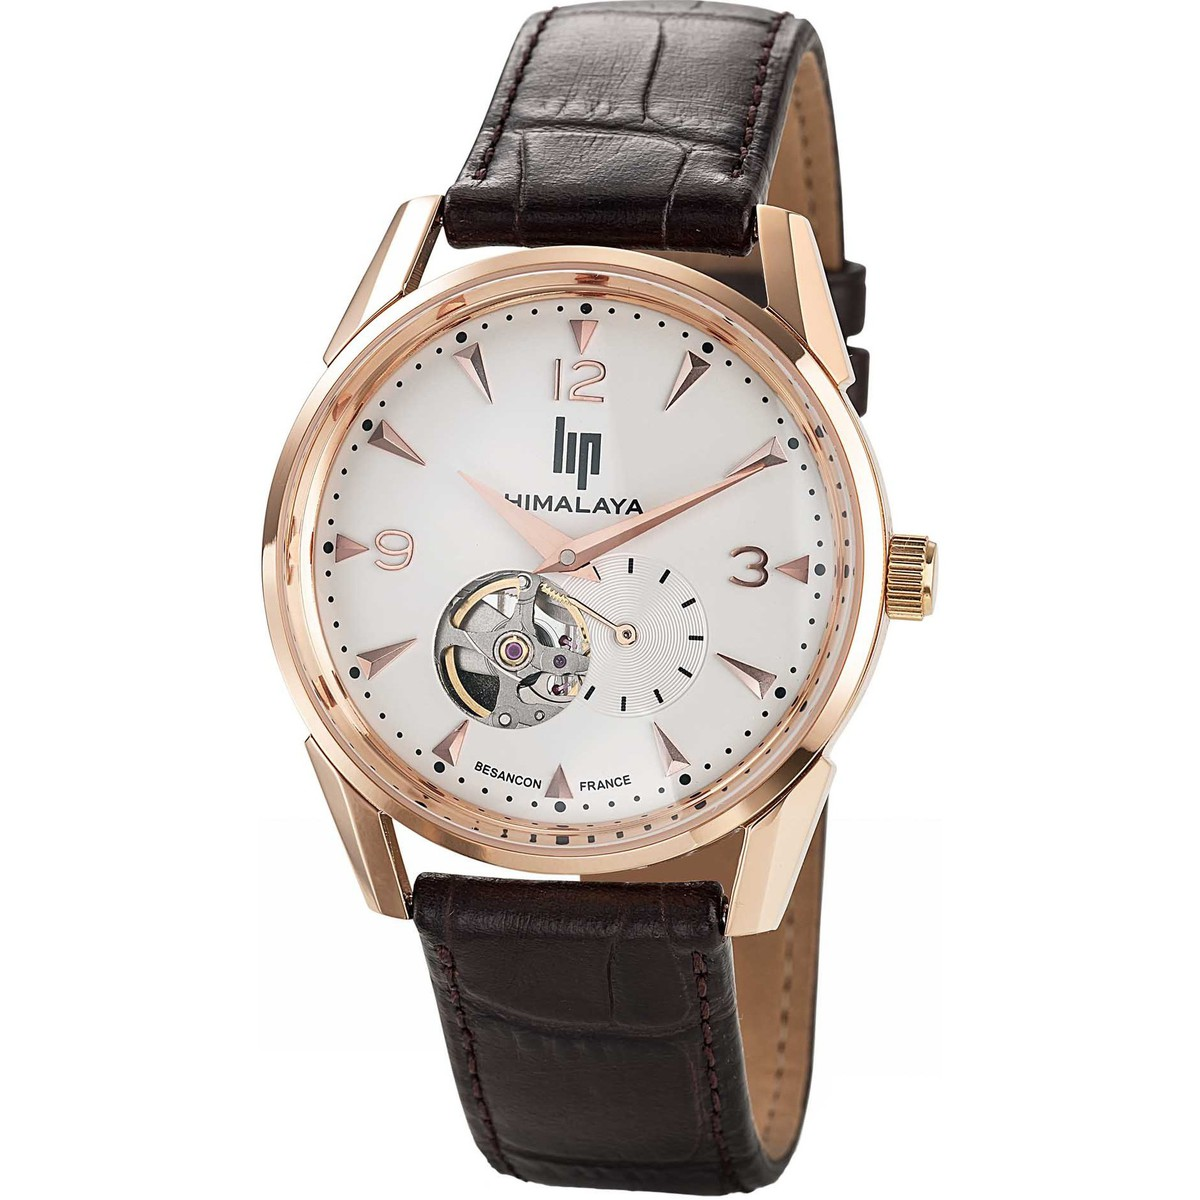 Lip Montre  HIMALAYA 1954 671254 - Montre Ronde Or rose Homme